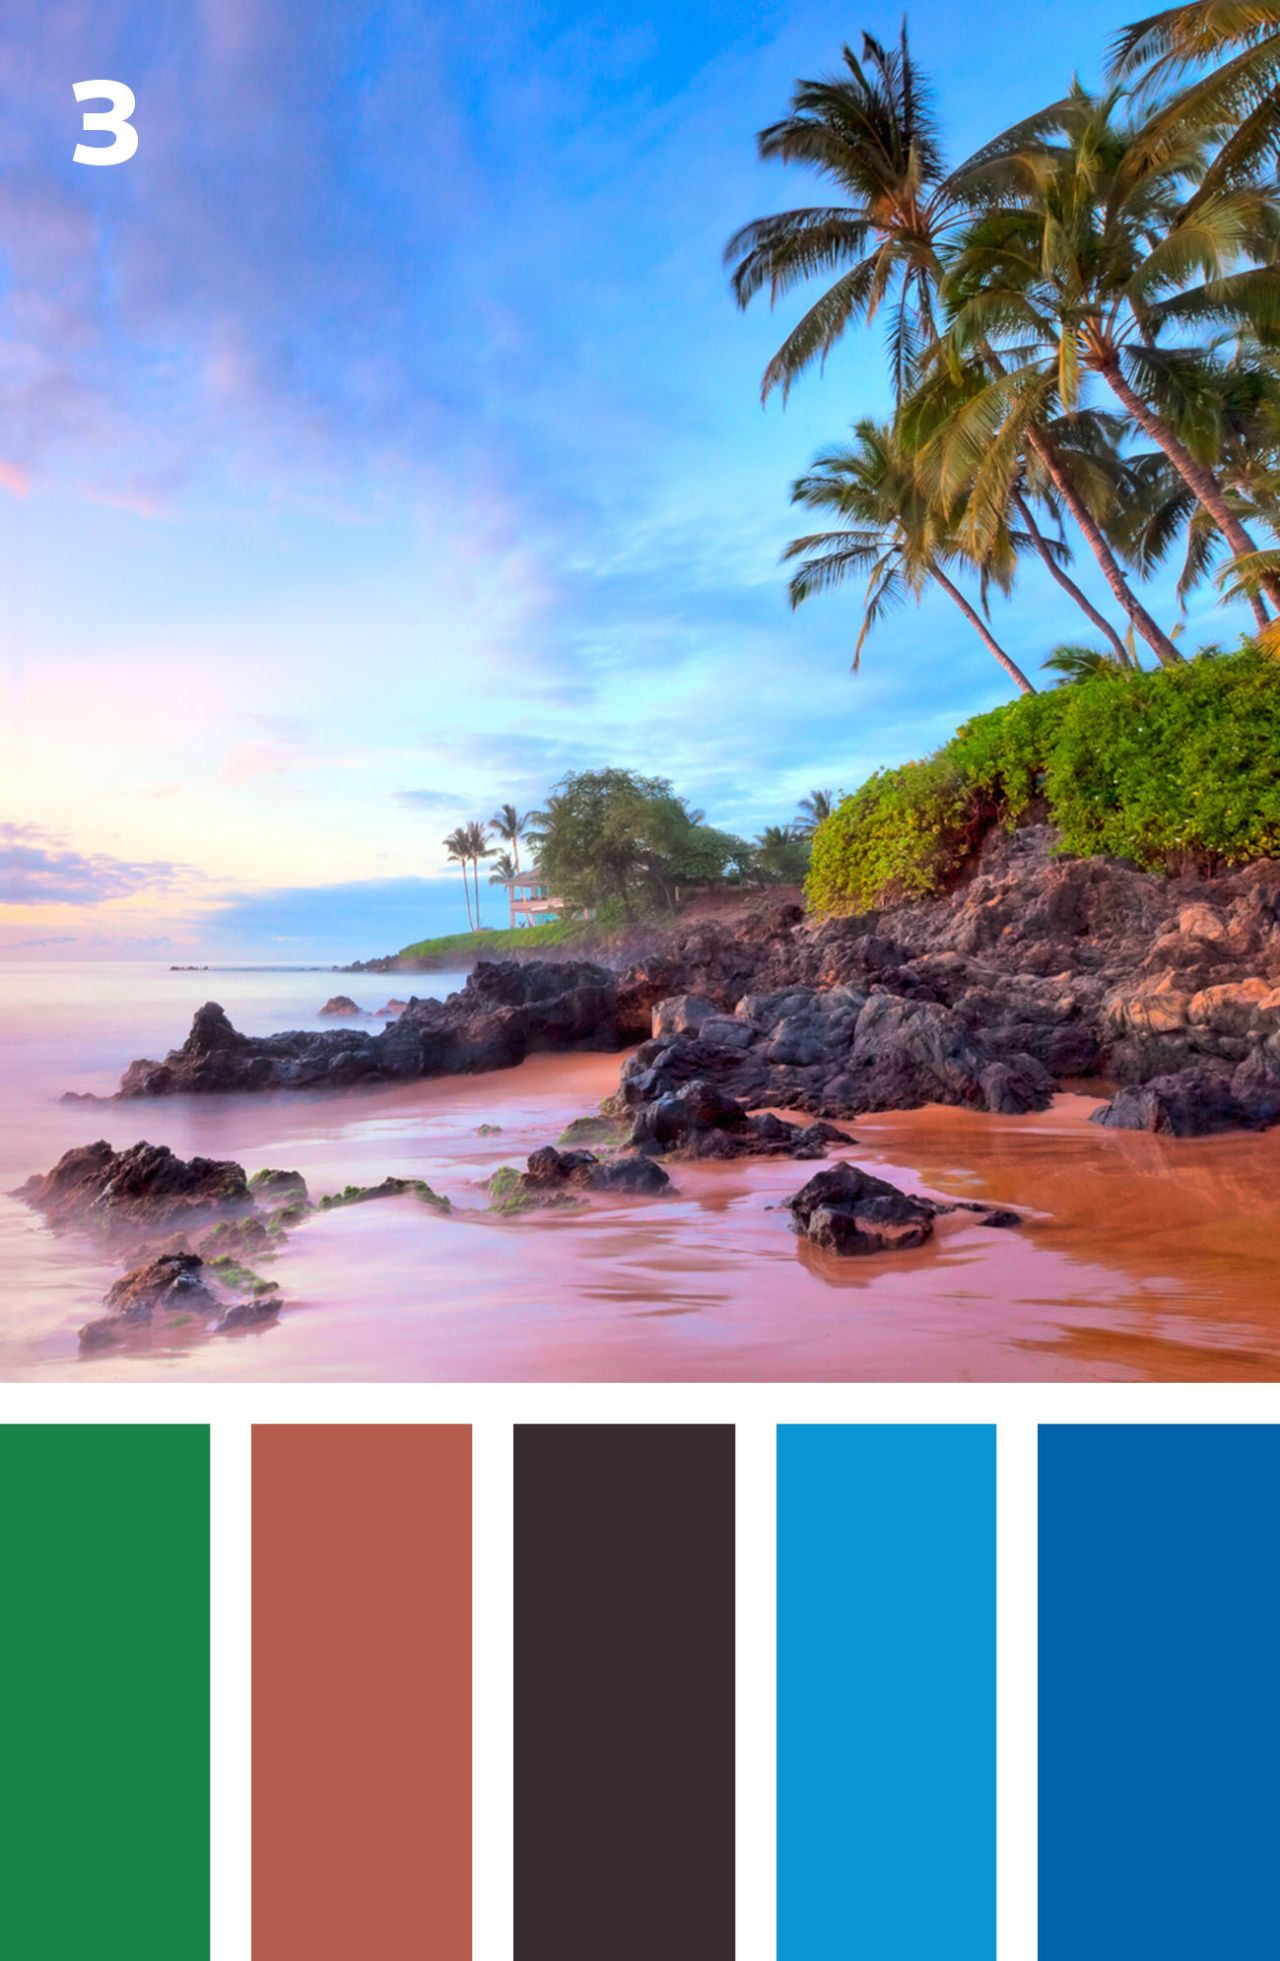 60+ Energizing Summer Colors To Decorate With - ELLEDecor.com & 60+ Energizing Summer Colors To Decorate With | Decorating and Interiors